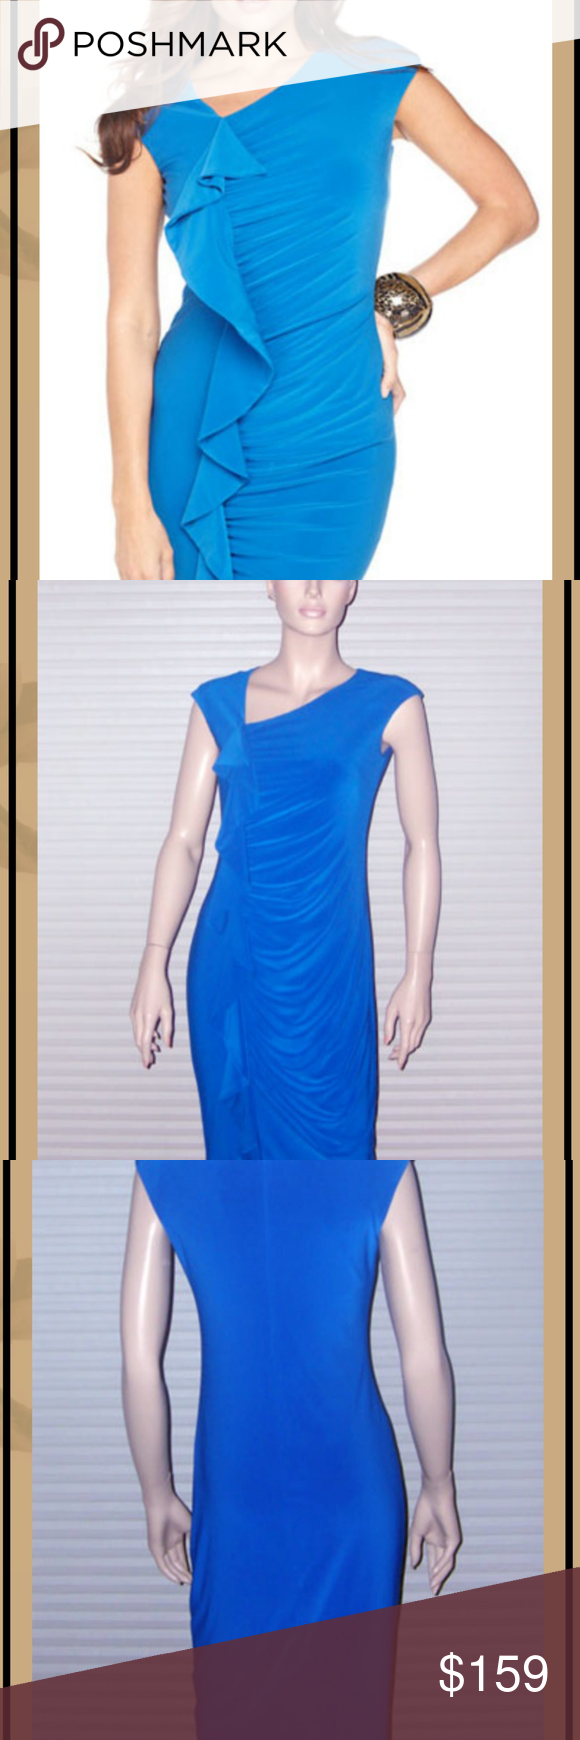 Size 10 & 12 - Frank Lyman Lane Cobalt Dress A gorgeous Day-to-Evening Style in versatile Cobalt.  Gentle gathers meet to a soft cascade ruffle down the front.  Wear for cocktails with shoulder duster earrings or put a blazer on top and wear to the office.  In wrinkle-resistant Poly Spandex blend with comfortable stretch.  Asymmetrical neckline; hidden zipper at back; sleeveless; straight midi hemline, can be made shorter if desired.  Imported from Canada; Hand Wash.  Two sizes in stock, one 10 #cobaltdress